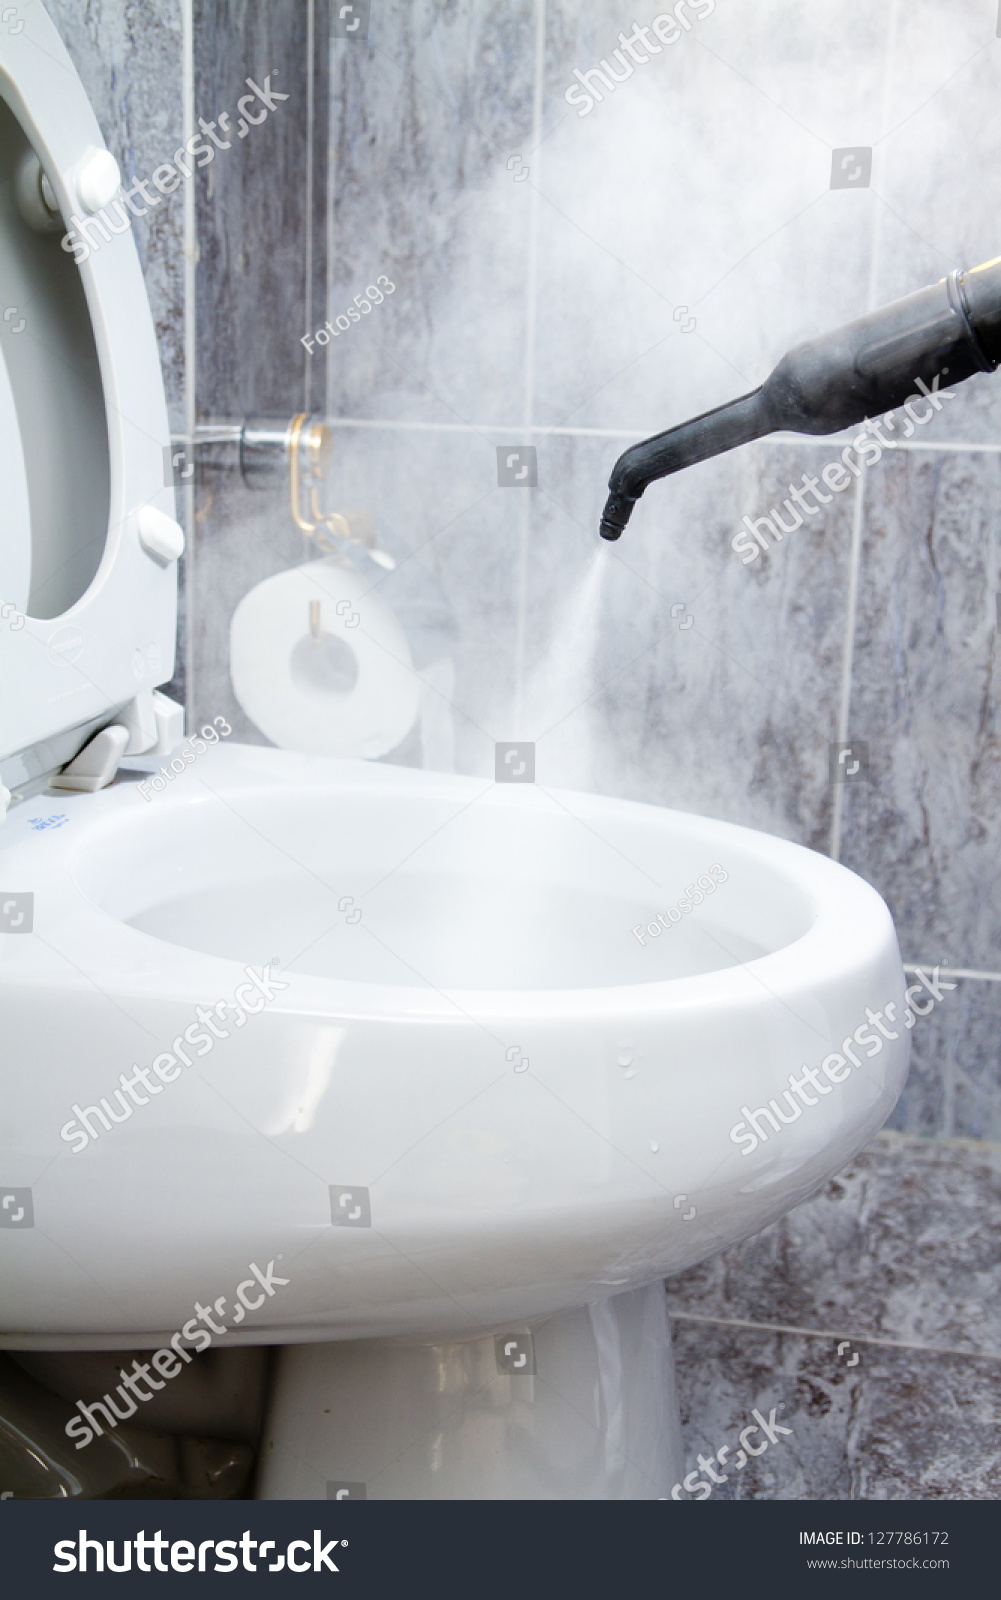 Cleaning Toilet Steam Stock Photo (Royalty Free) 127786172 ...